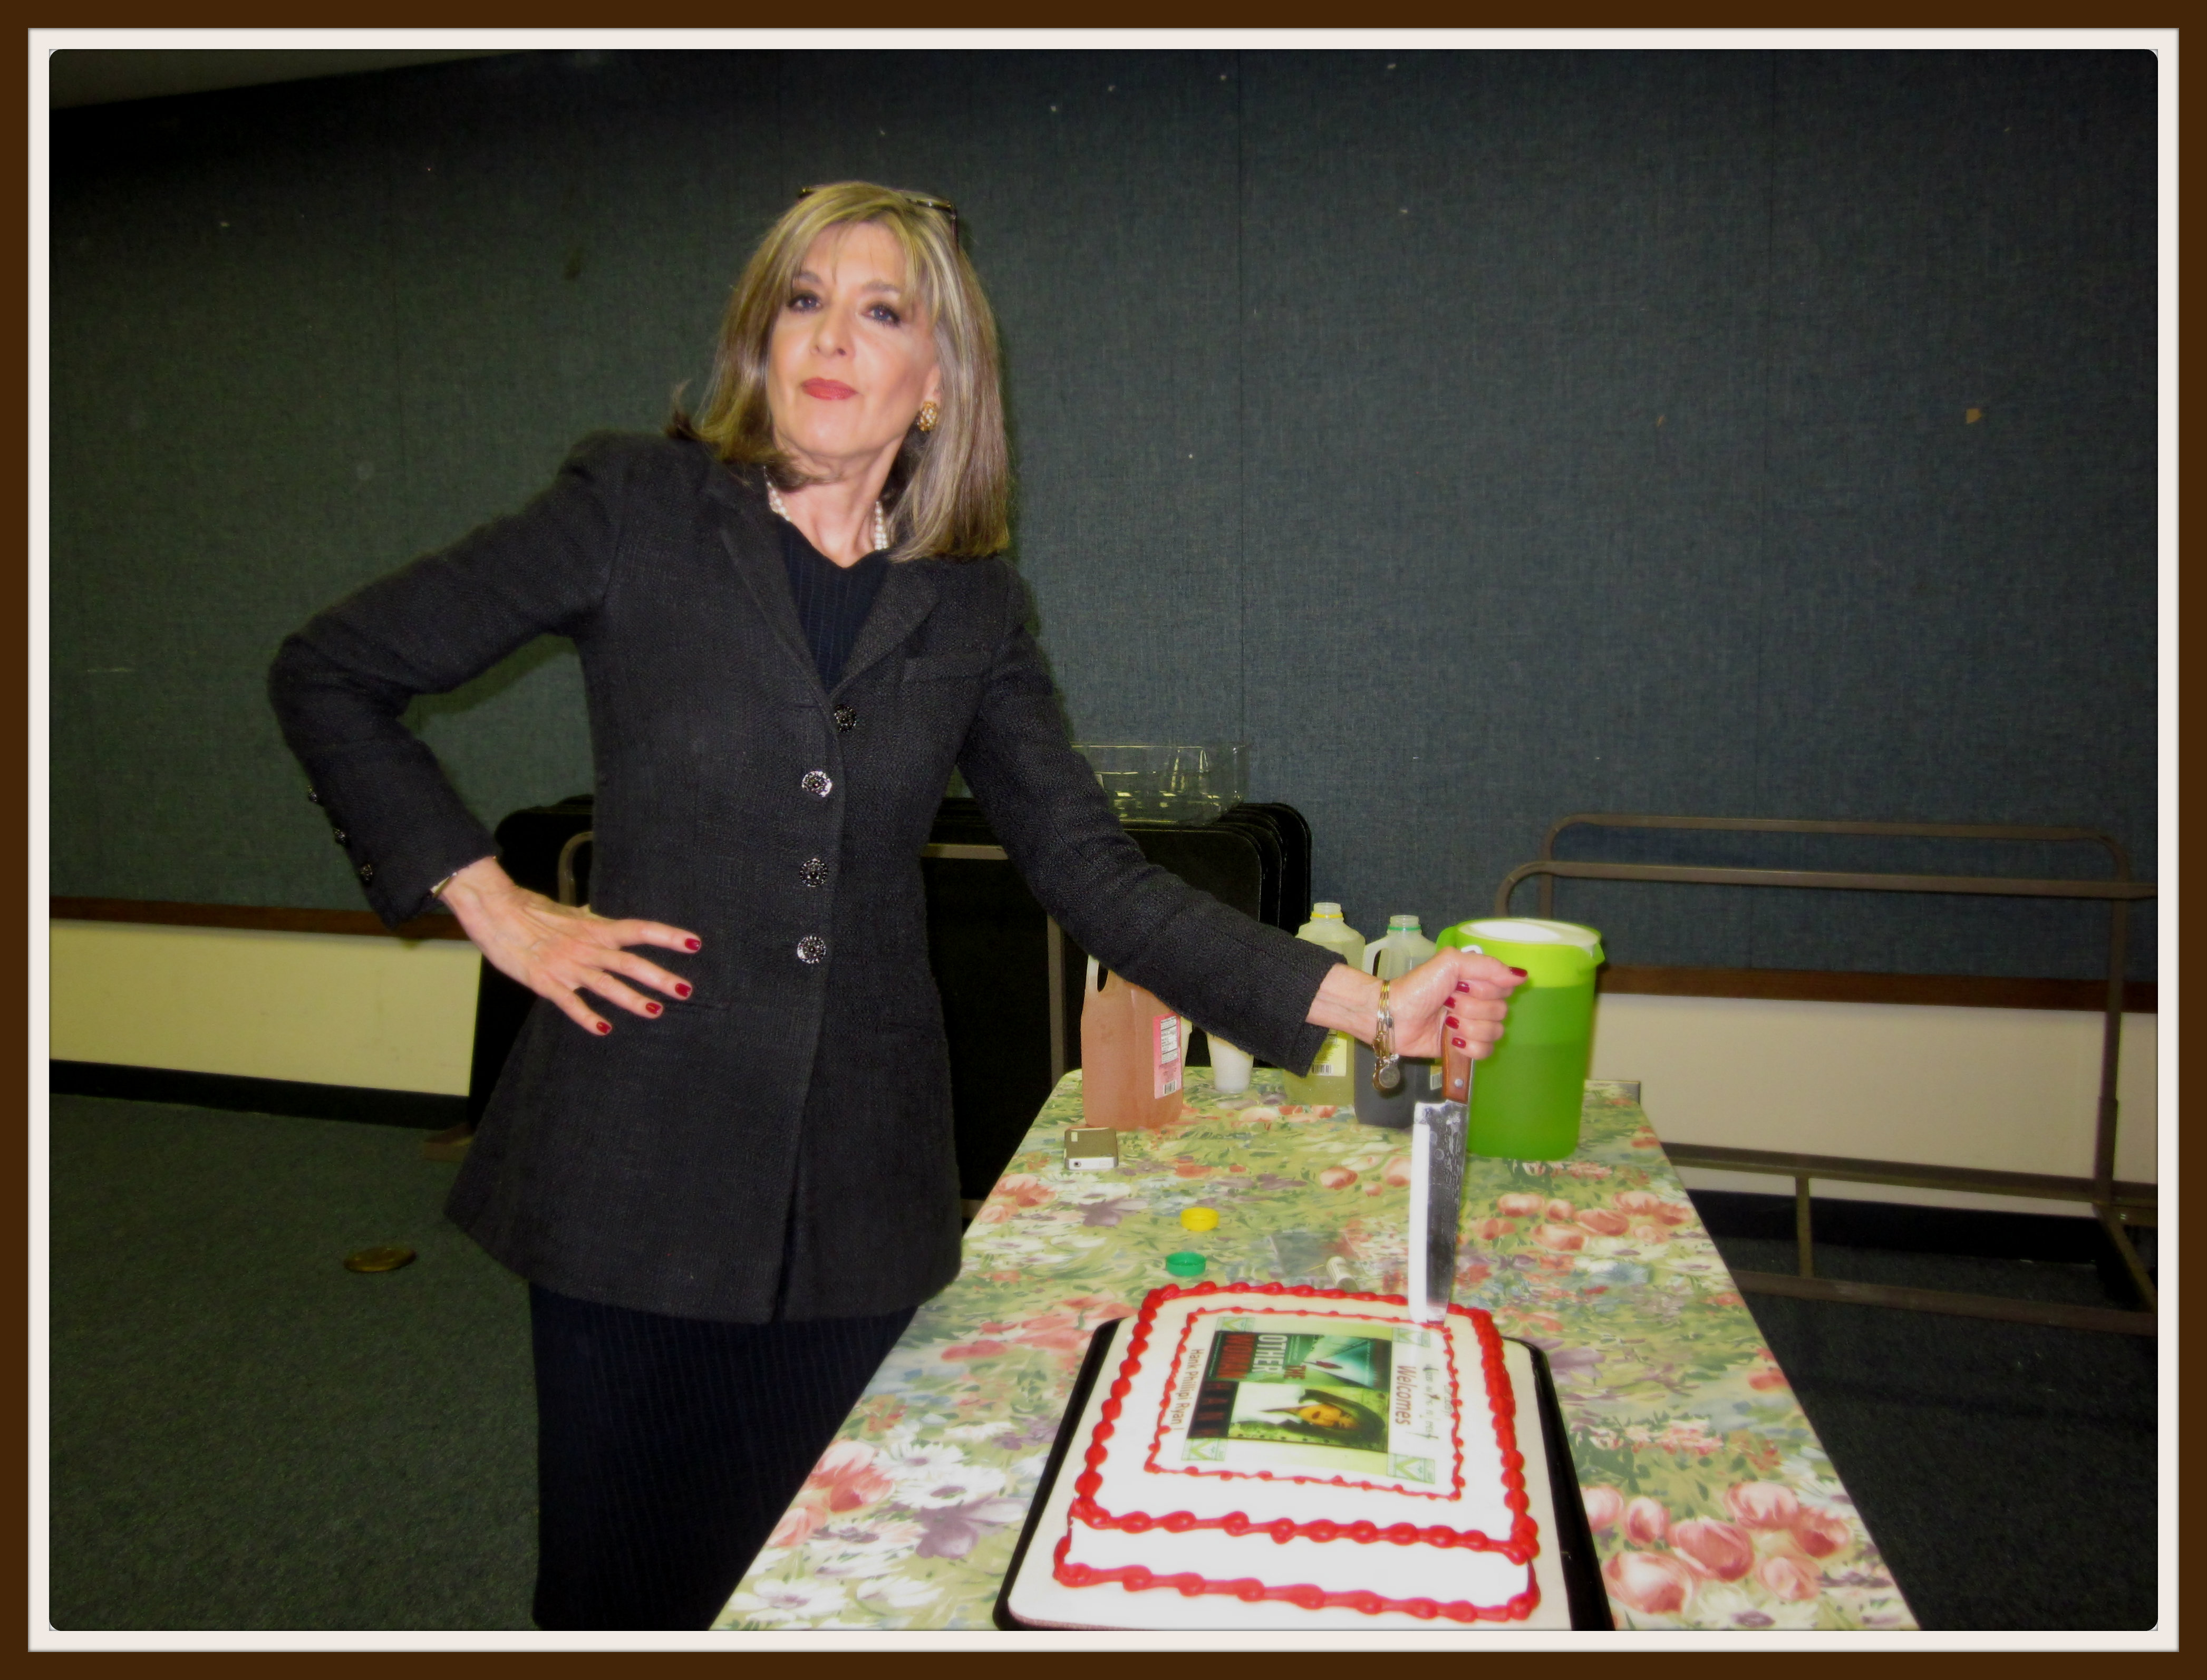 Hank Phillippi Ryan properly stakes cake